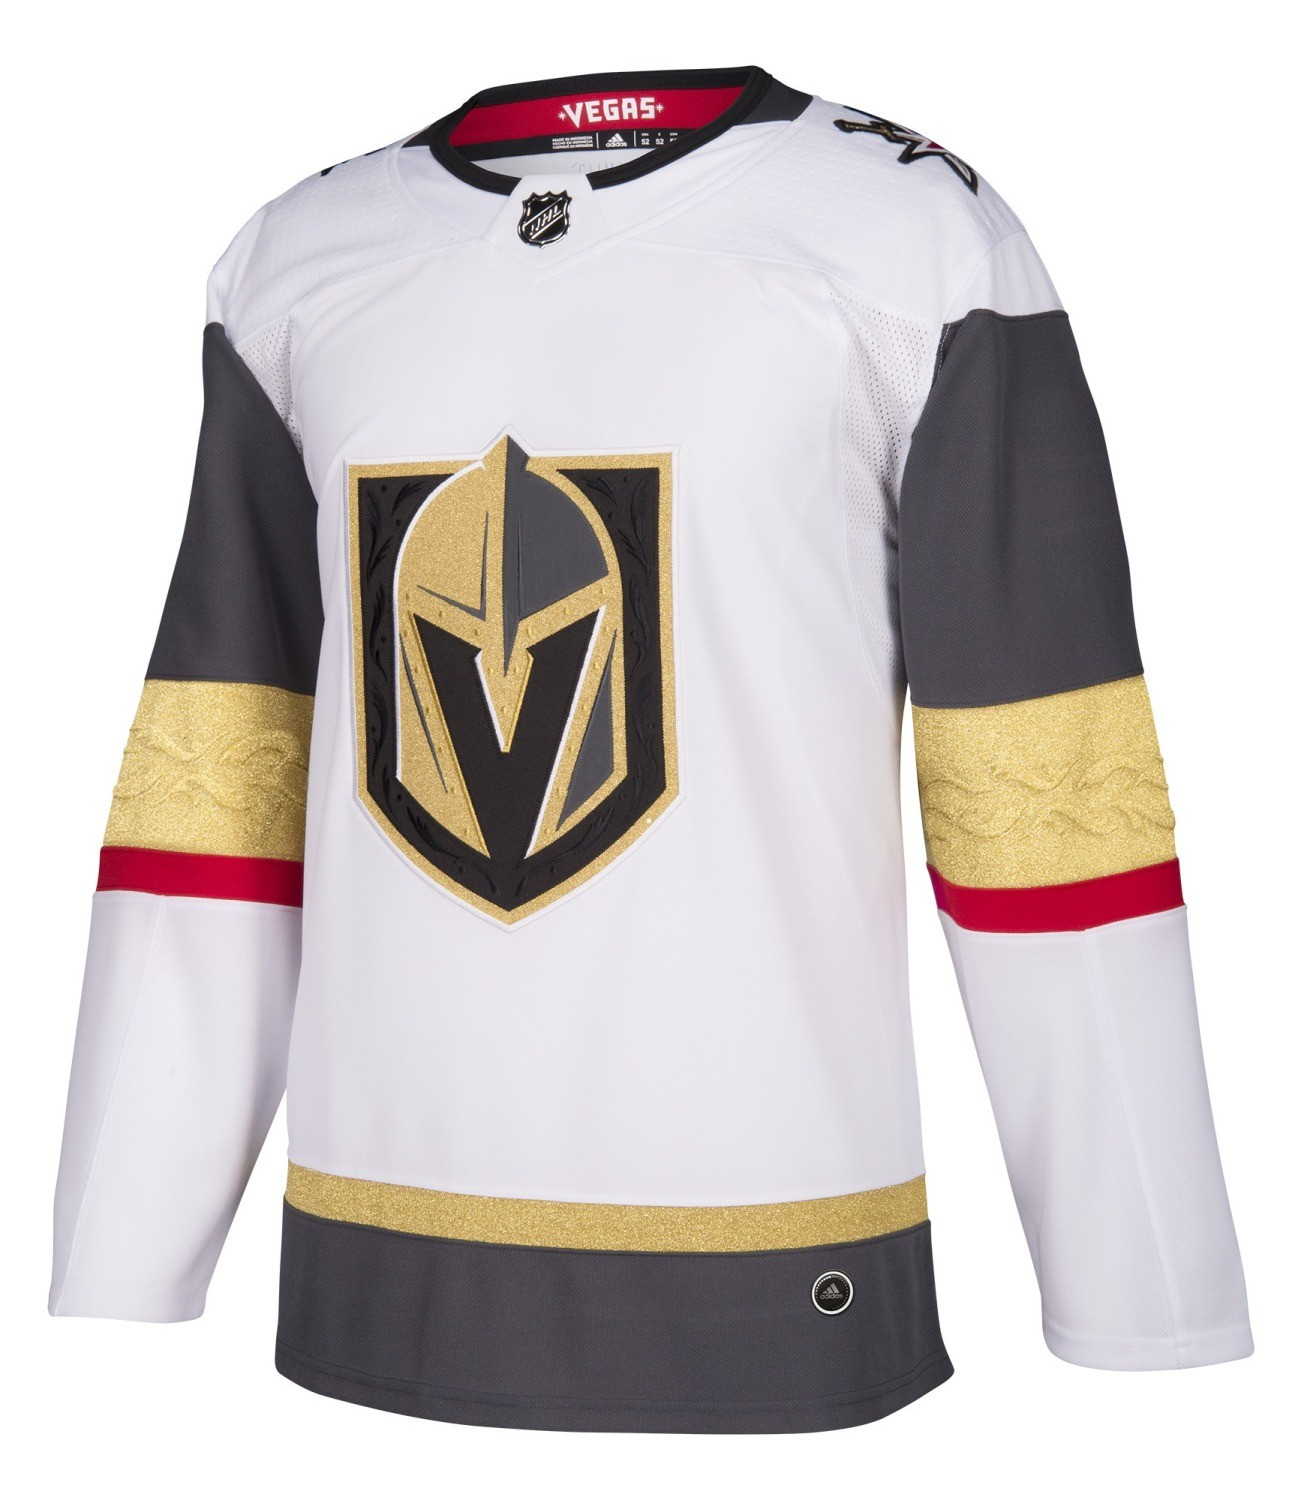 edc3ae9bc1d Details about Las Vegas Golden Knights Adidas NHL Men's Climalite Authentic  Away Hockey Jersey